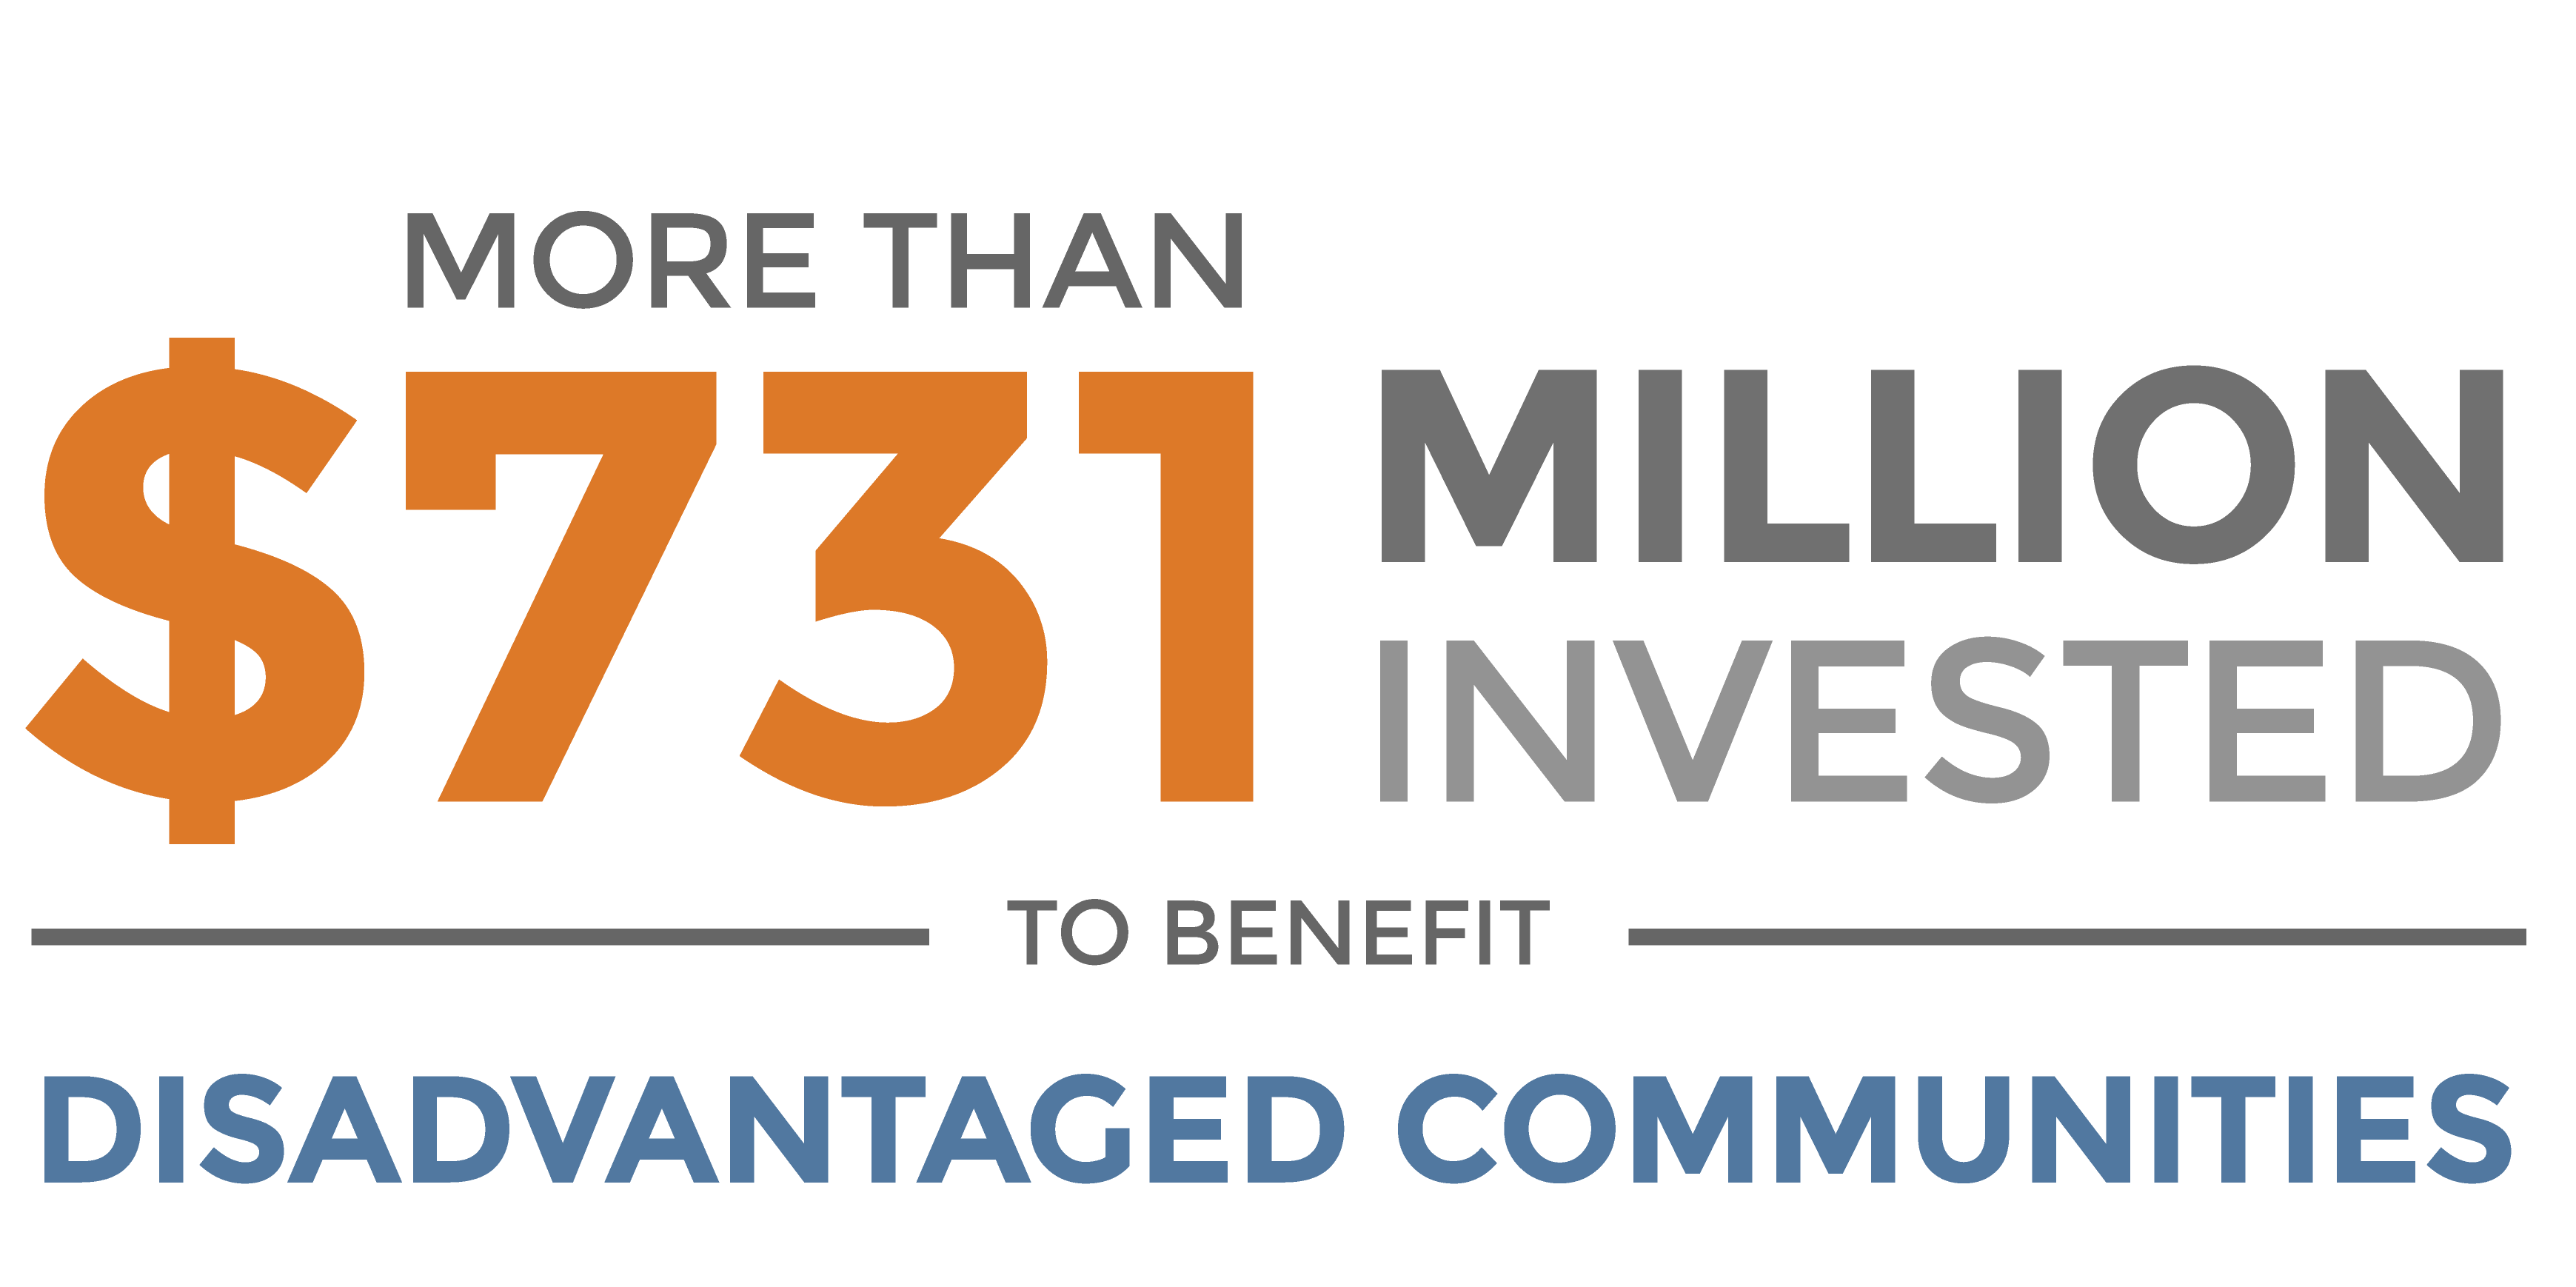 More than $387 million invested to benefit disadvantaged communities.